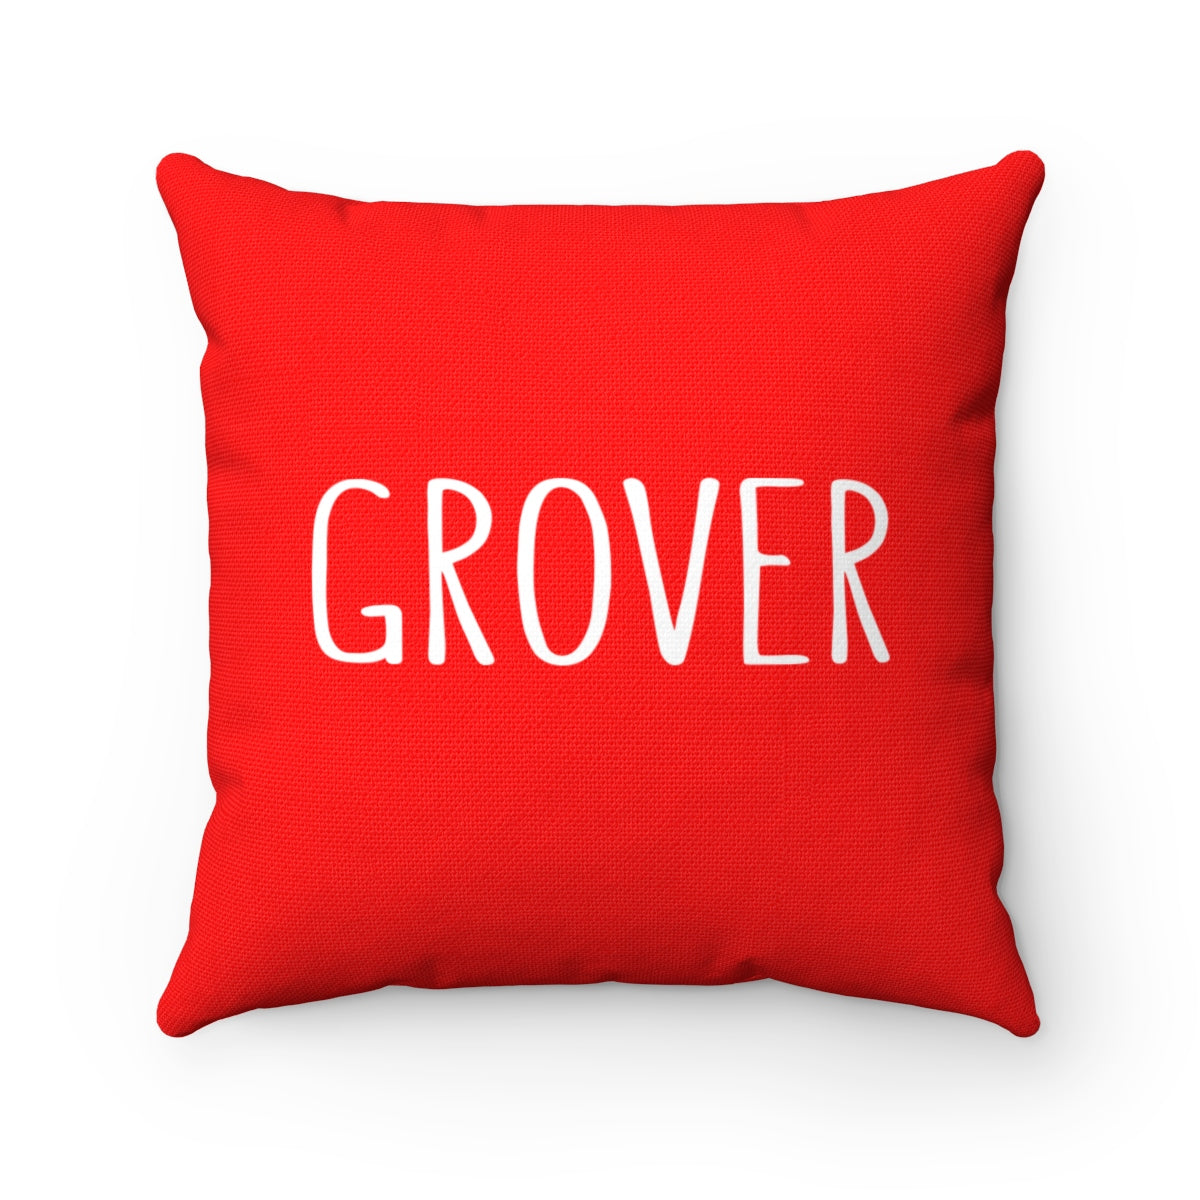 Grover Pillow: Red